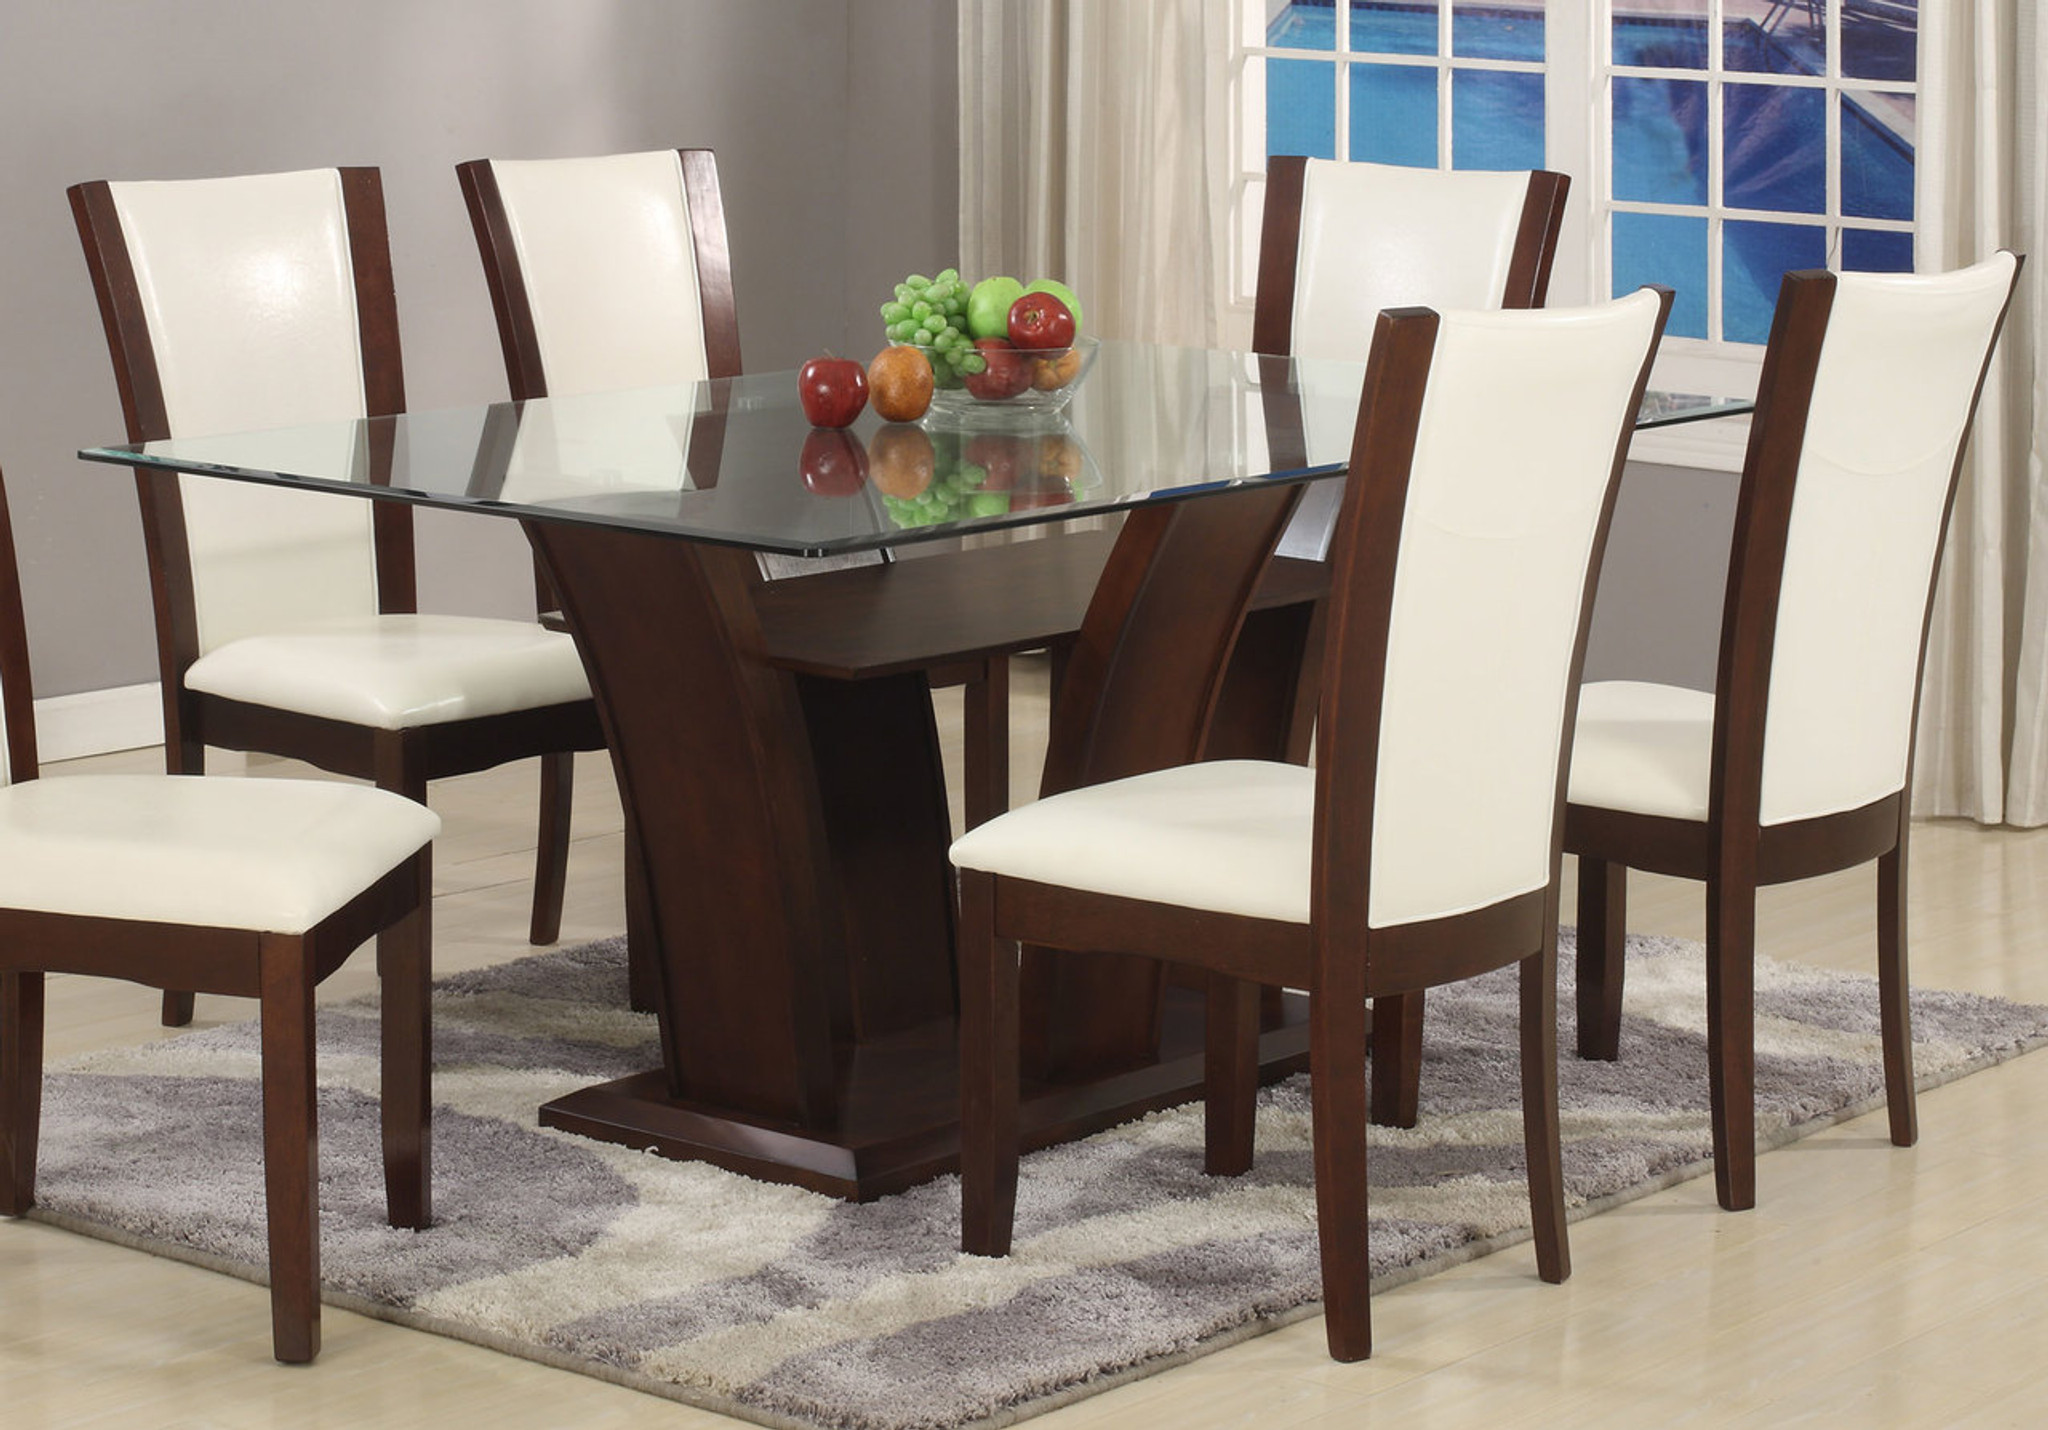 CAMELIA DINING TABLE-1210T/4272/BASE & 1210T/4272/BASE CAMELIA DINING TABLE COLLECTION by Crown Mark